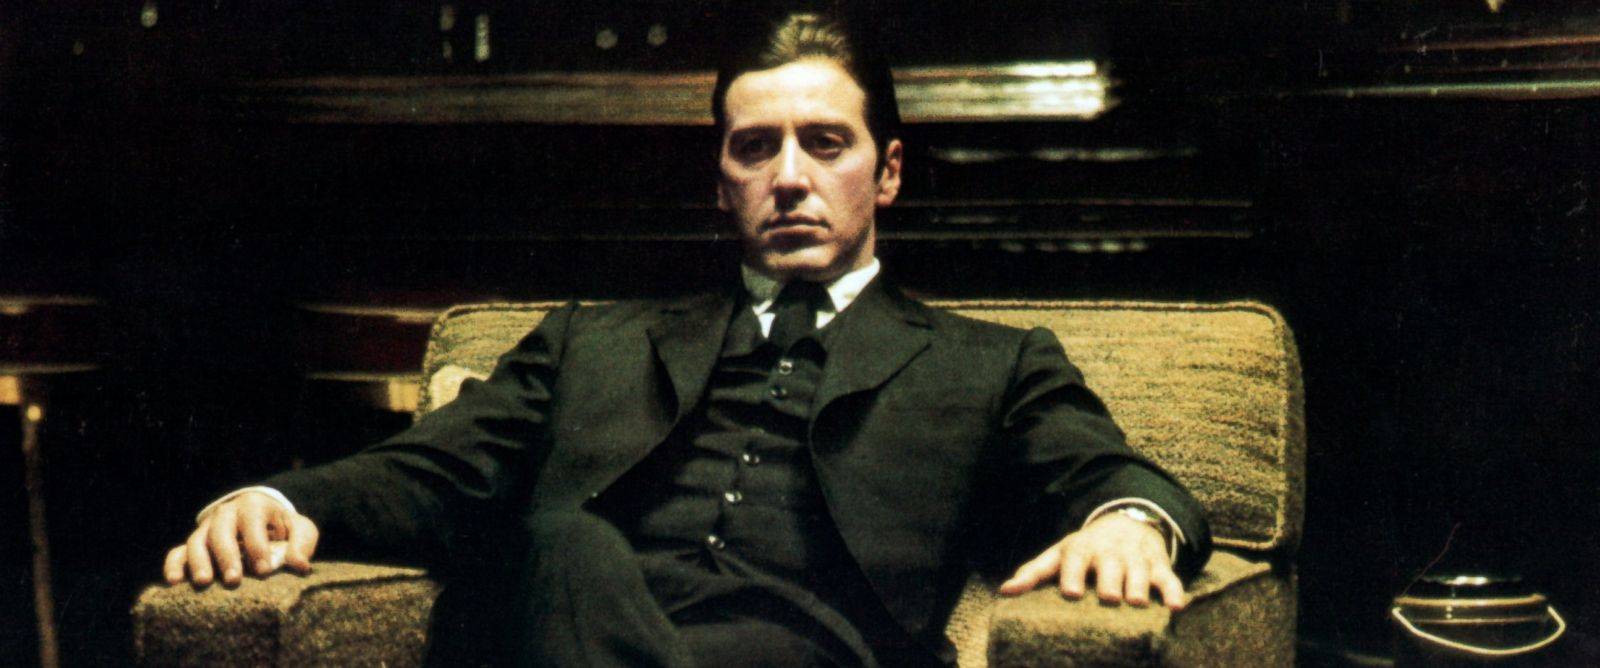 Al pacino godfather part 1